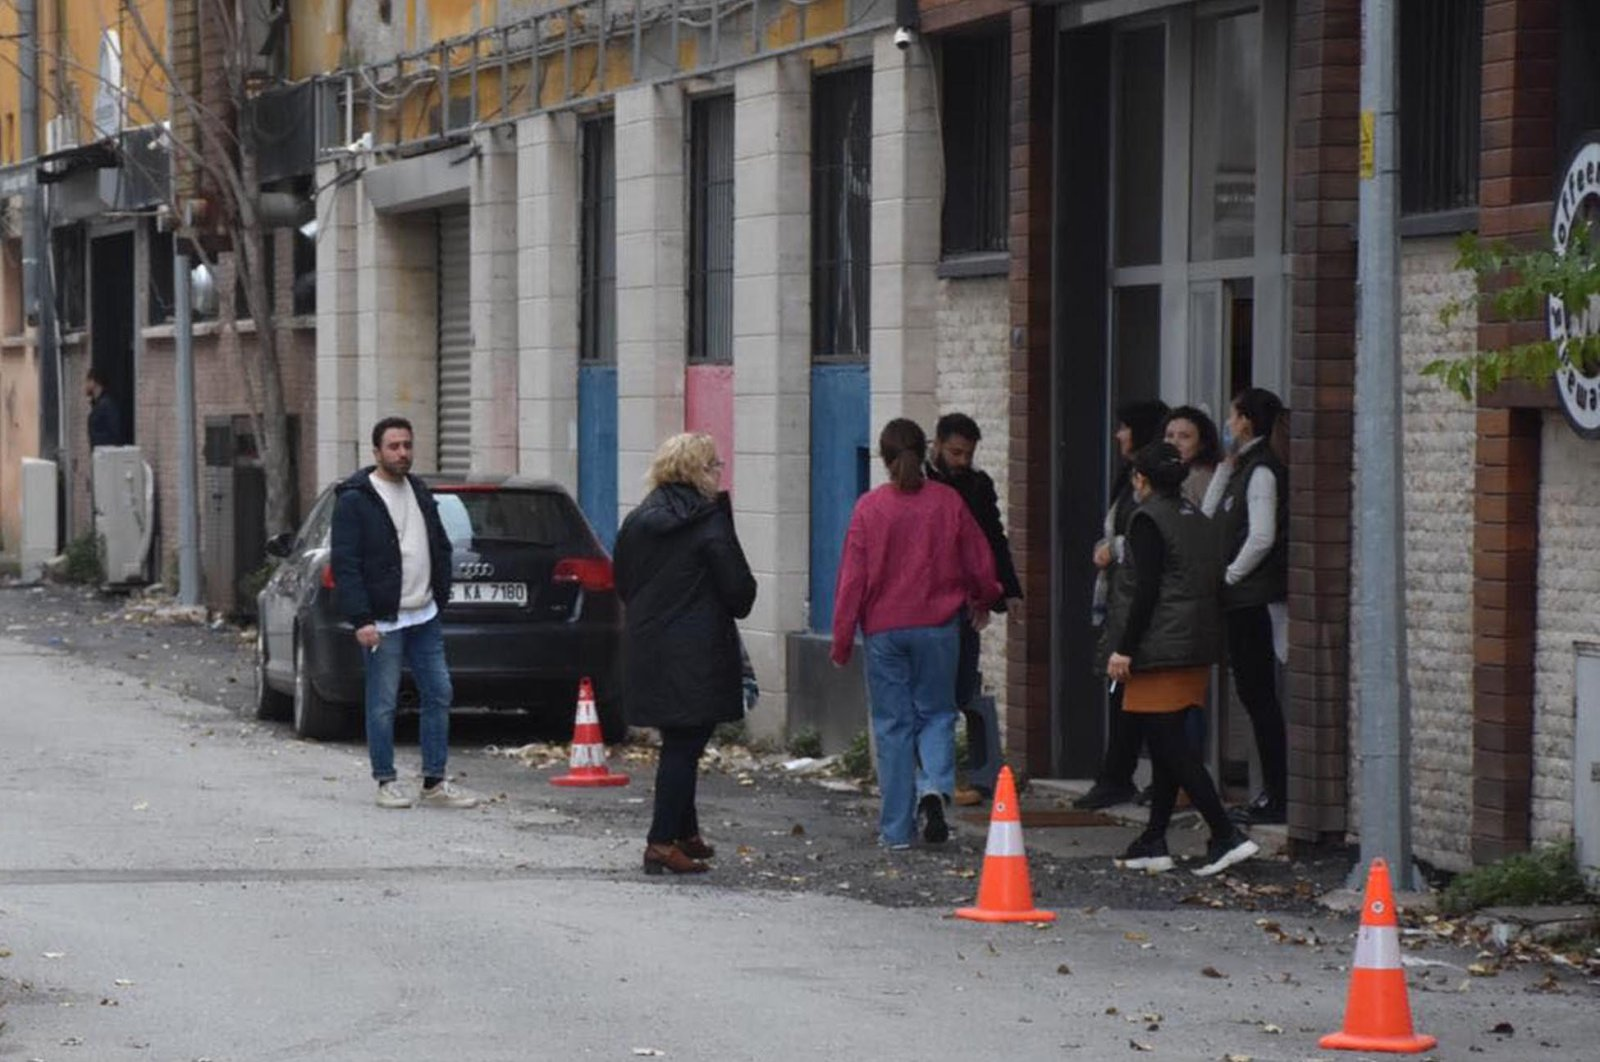 Locals stand outside their homes and offices in Turkey's Izmir after the earthquake, Feb. 1, 2021. (DHA Photo)